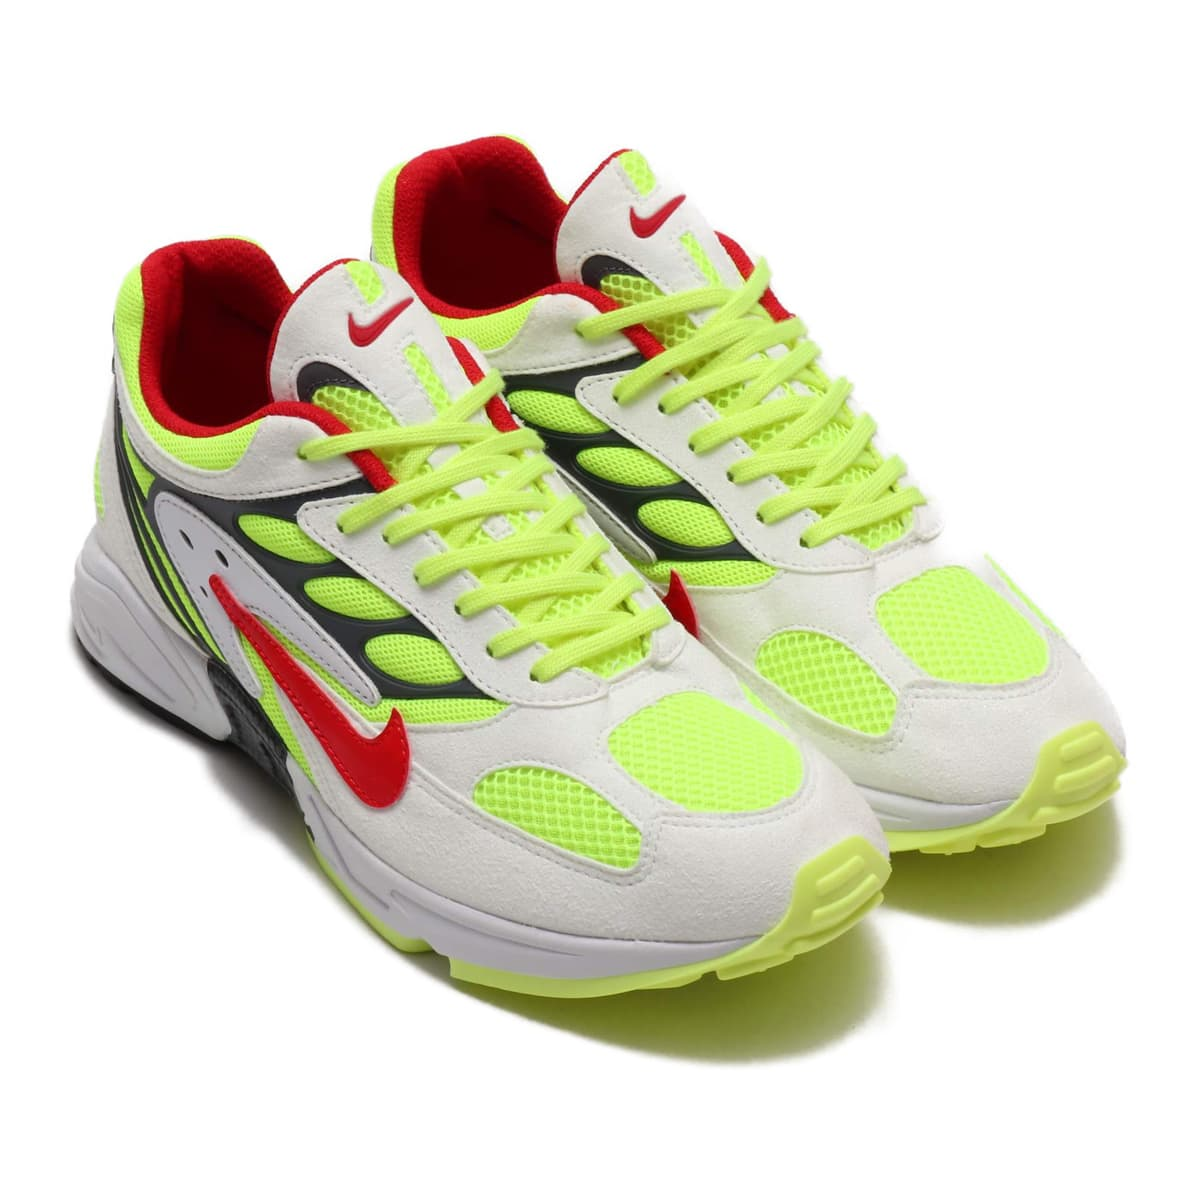 NIKE AIR GHOST RACER WHITE/ATOM RED-NEON YELLOW-DARK GREY 19FA-S_photo_large